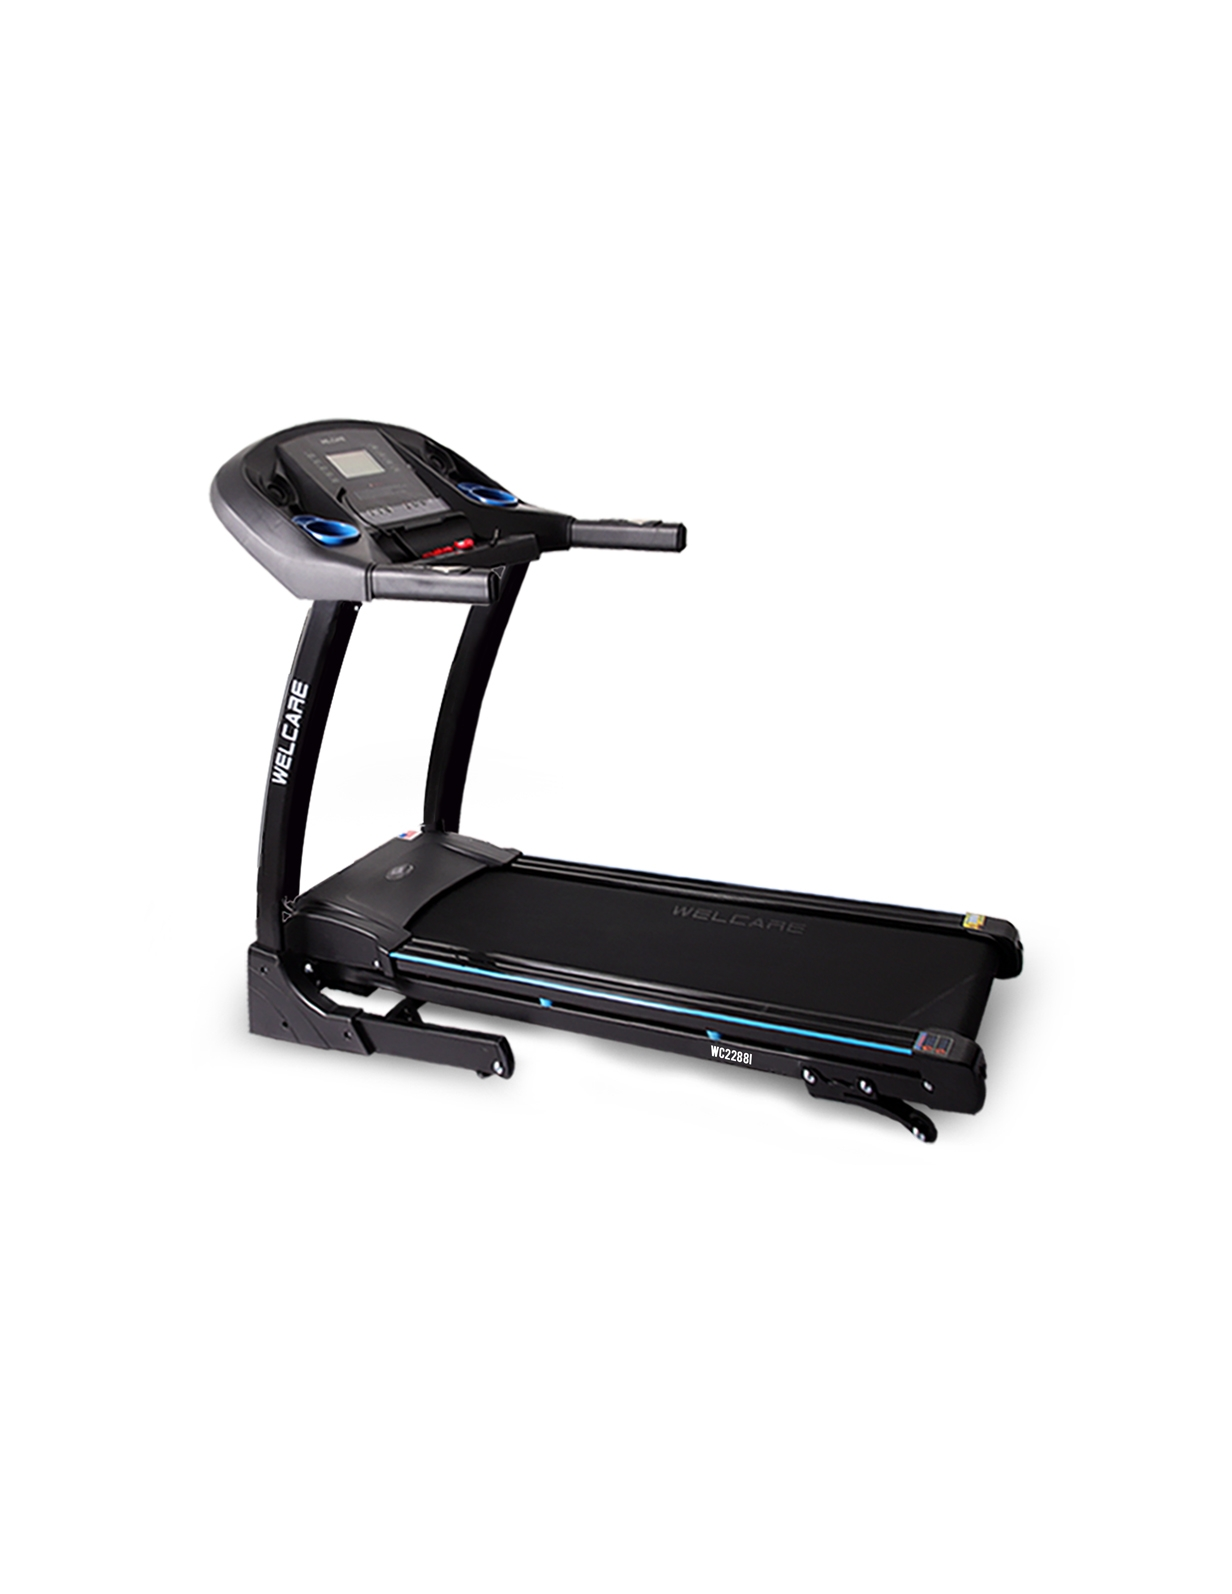 WC 2288I MOTORIZED TREADMILL